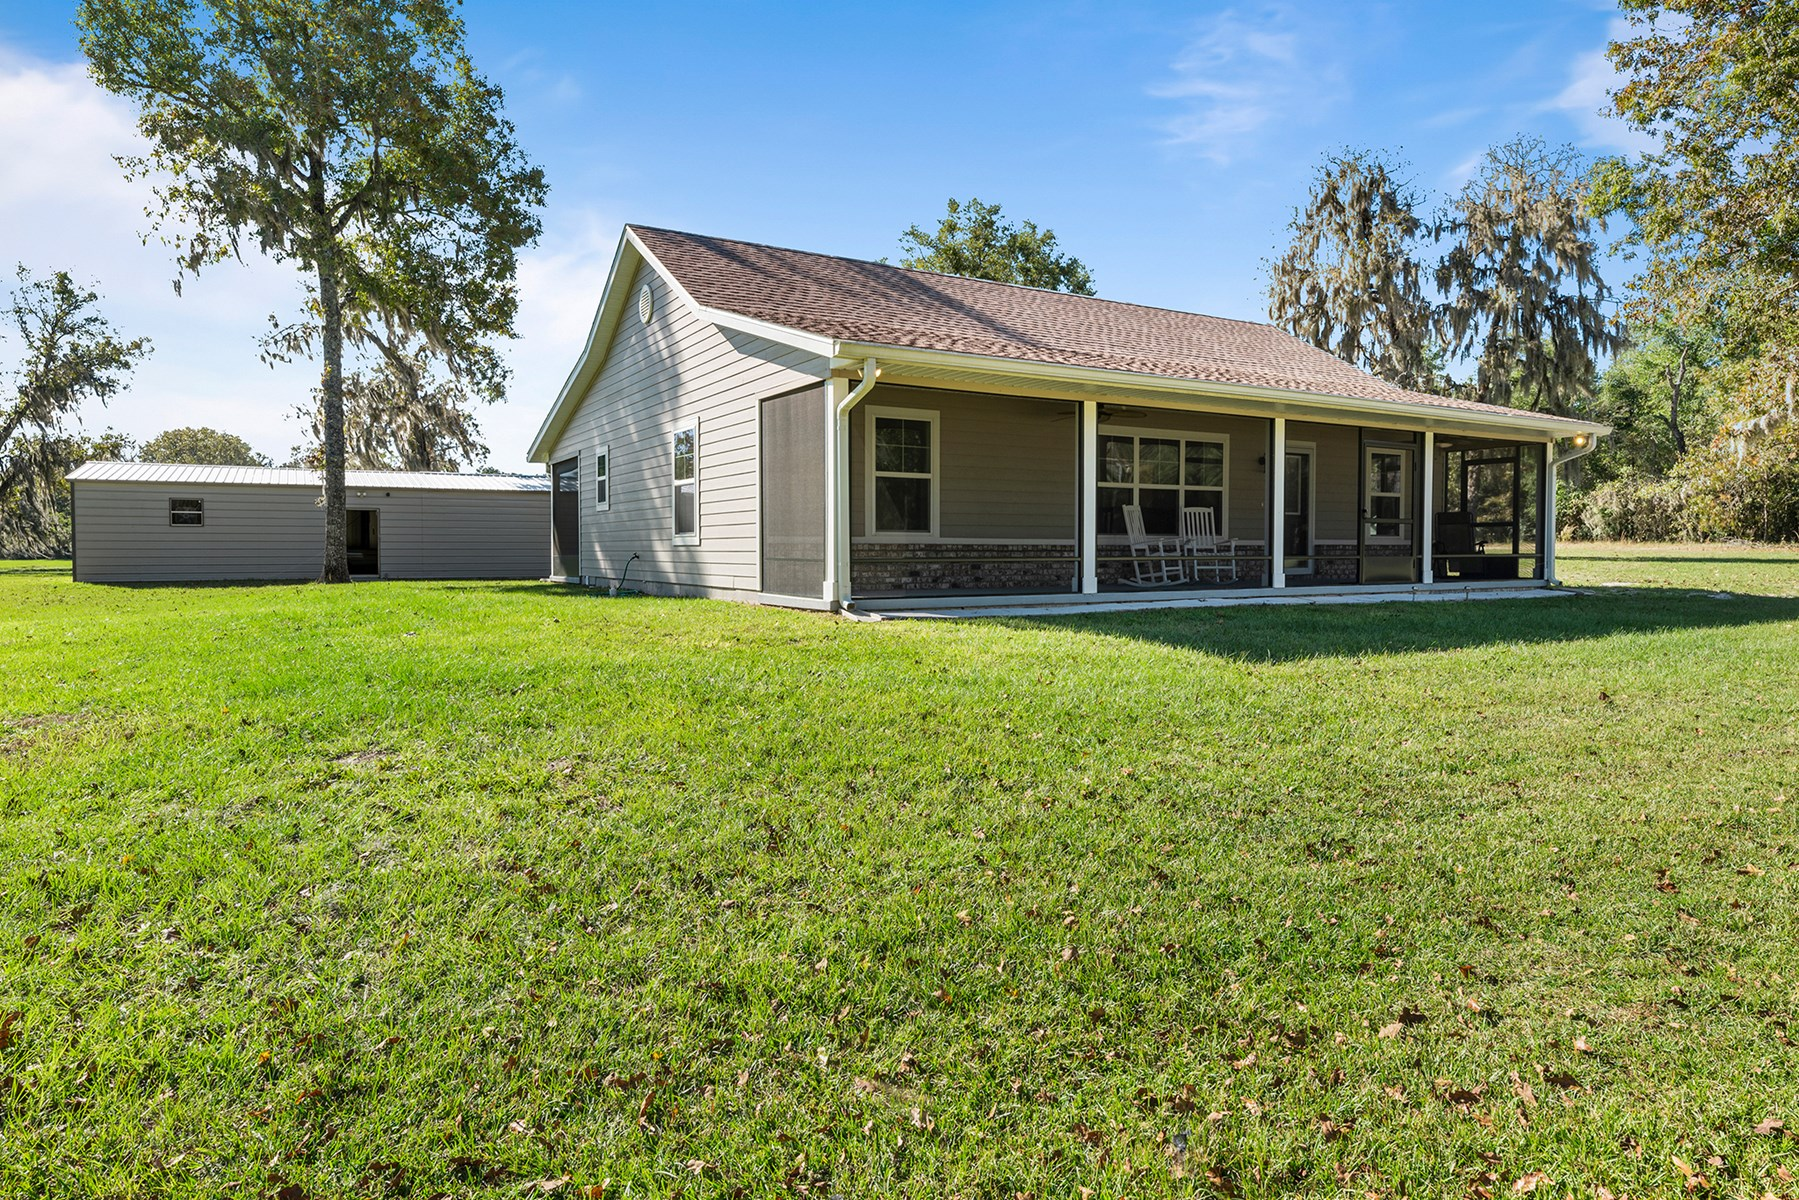 MINT CONDITION SINGLE FAMILY HOME on TWO ACRES!